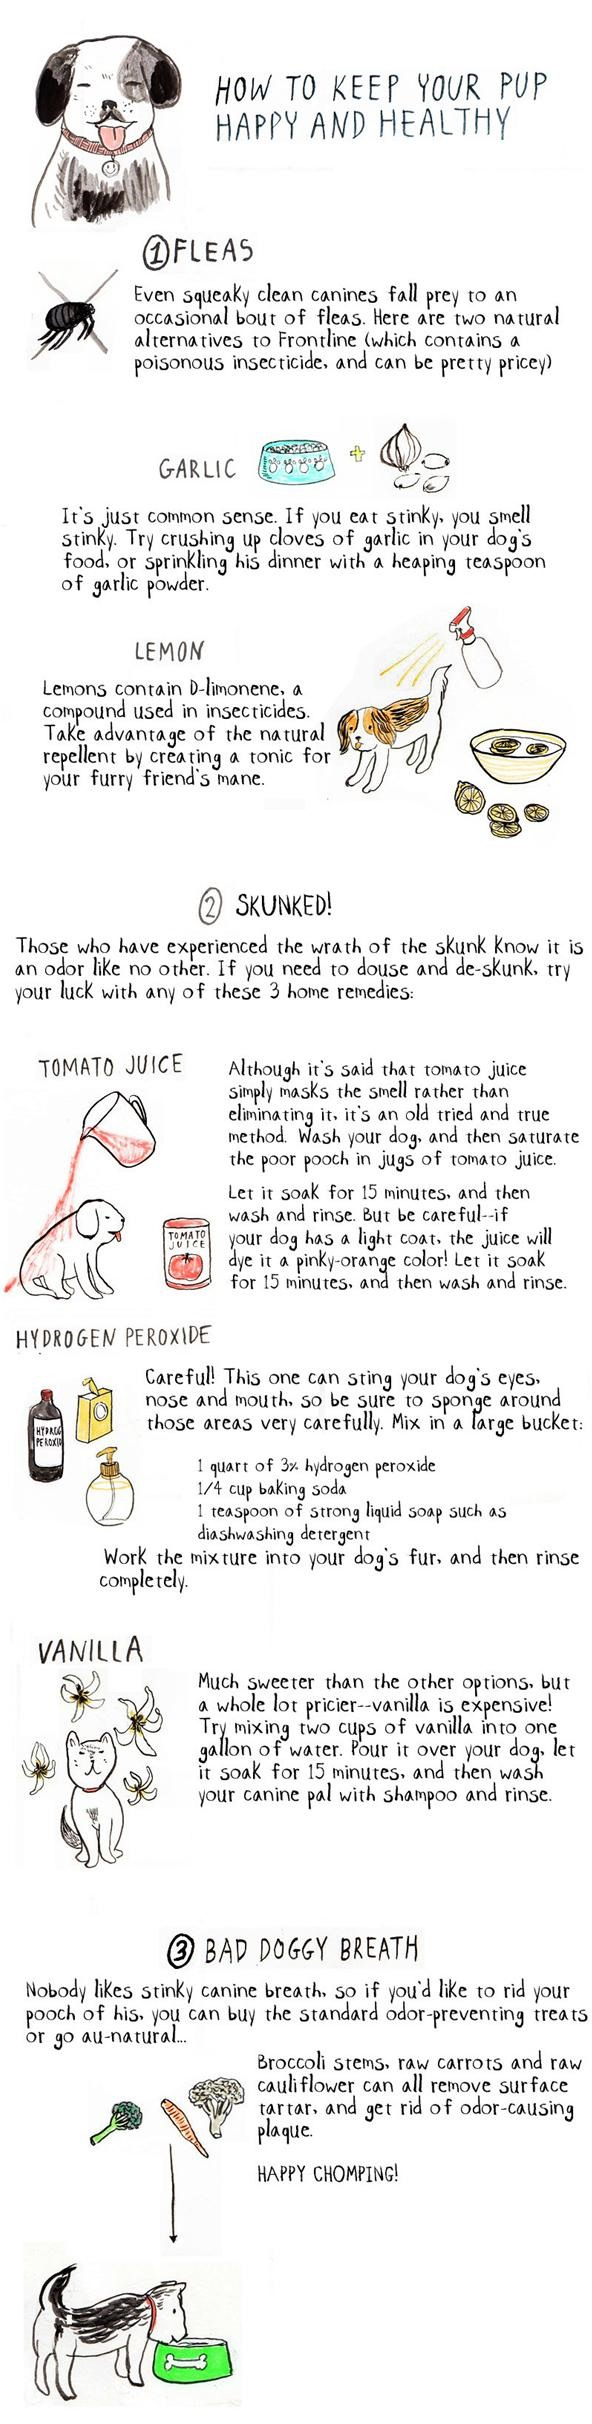 Home Remedies for Dogs: Treating Fleas, Bad Breath, & Skunk Smell